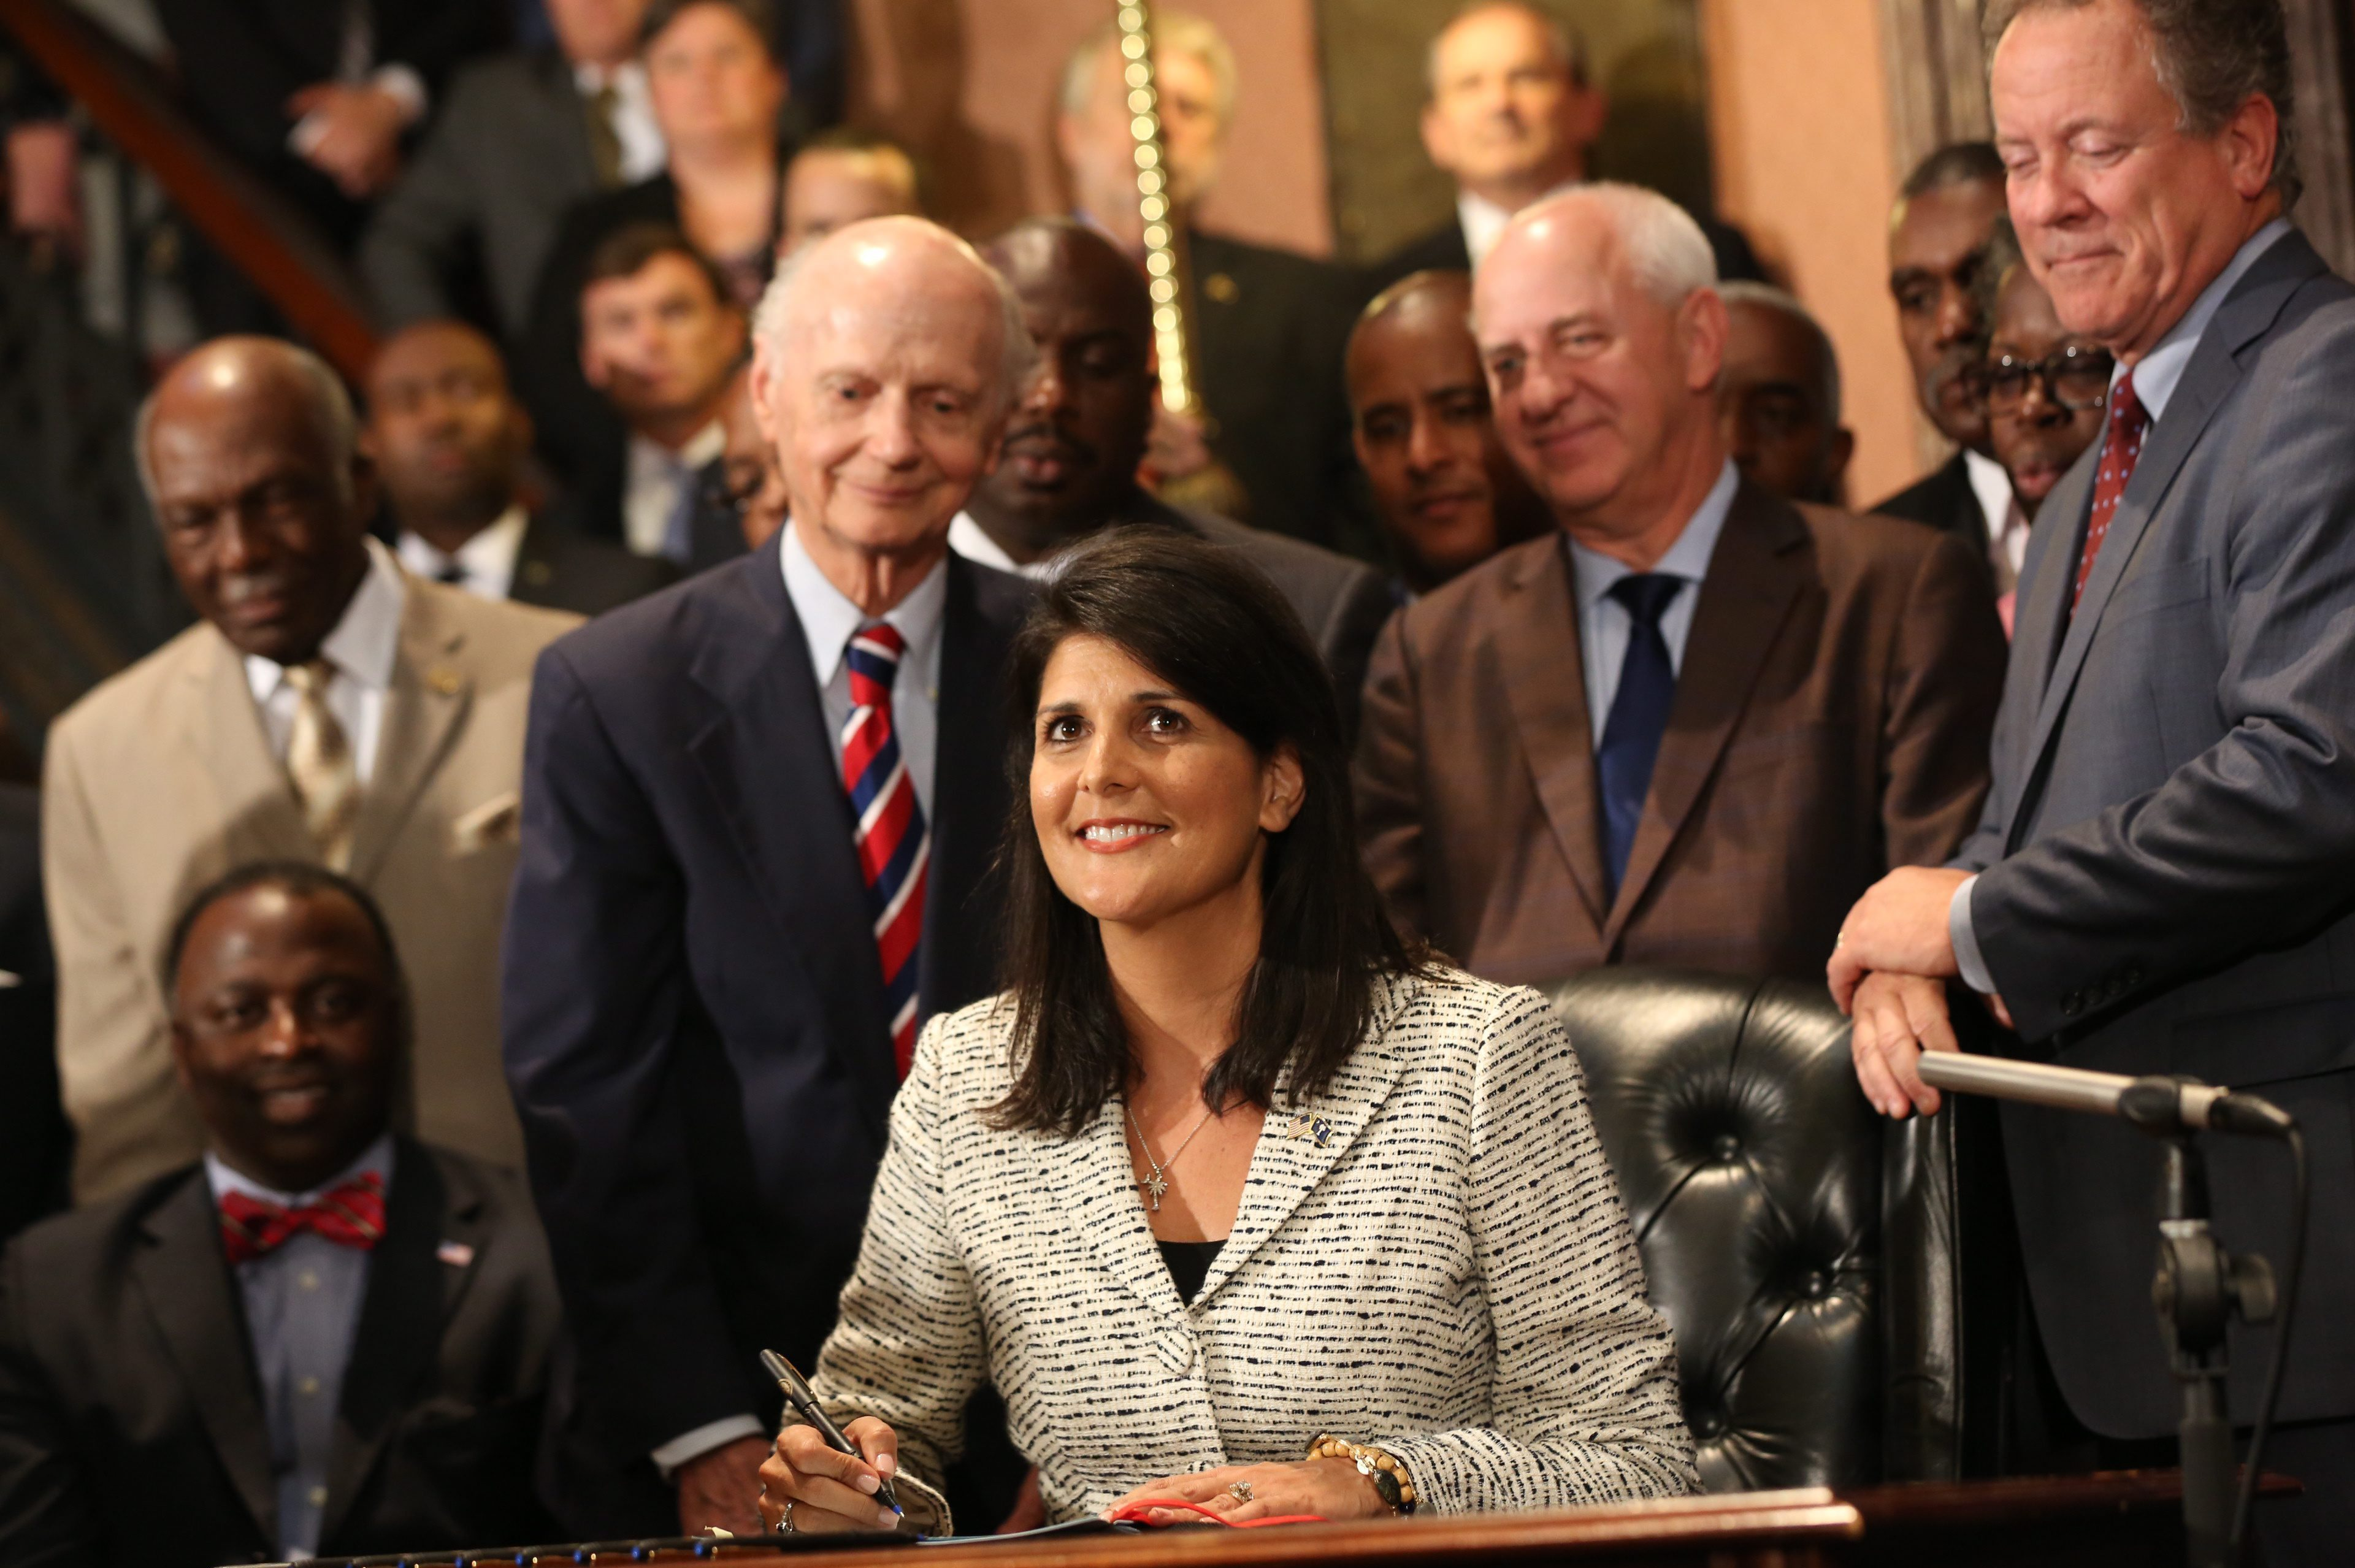 With her predecessors in the governor's office and others looking on, Gov. Nikki Haley signs into law a bill that removes the Confederate flag from the State House in Columbia.